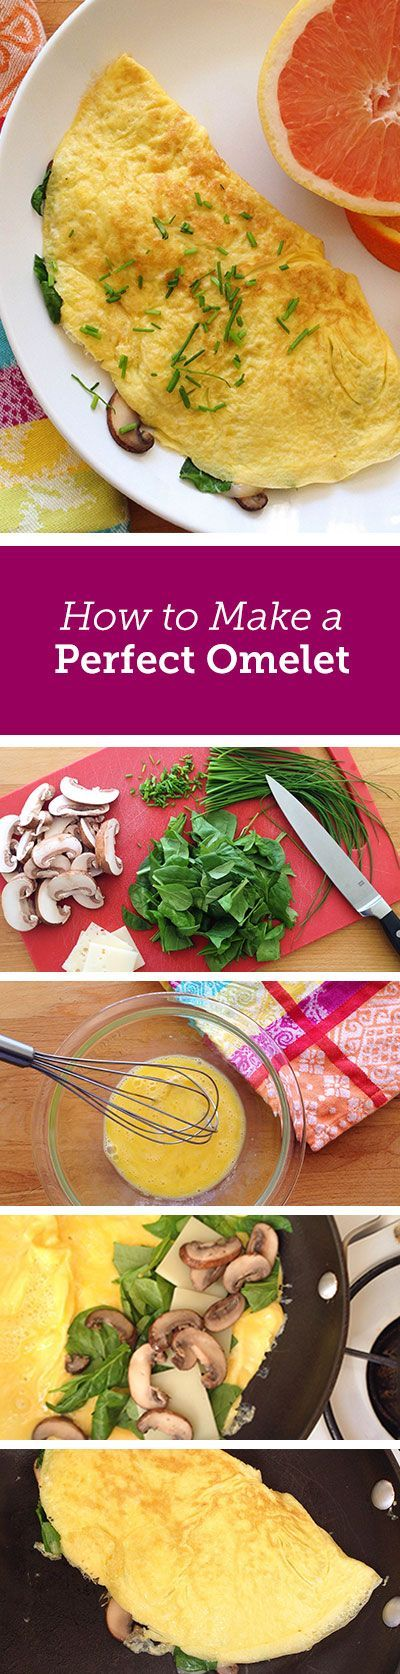 How to make a perfect omelet